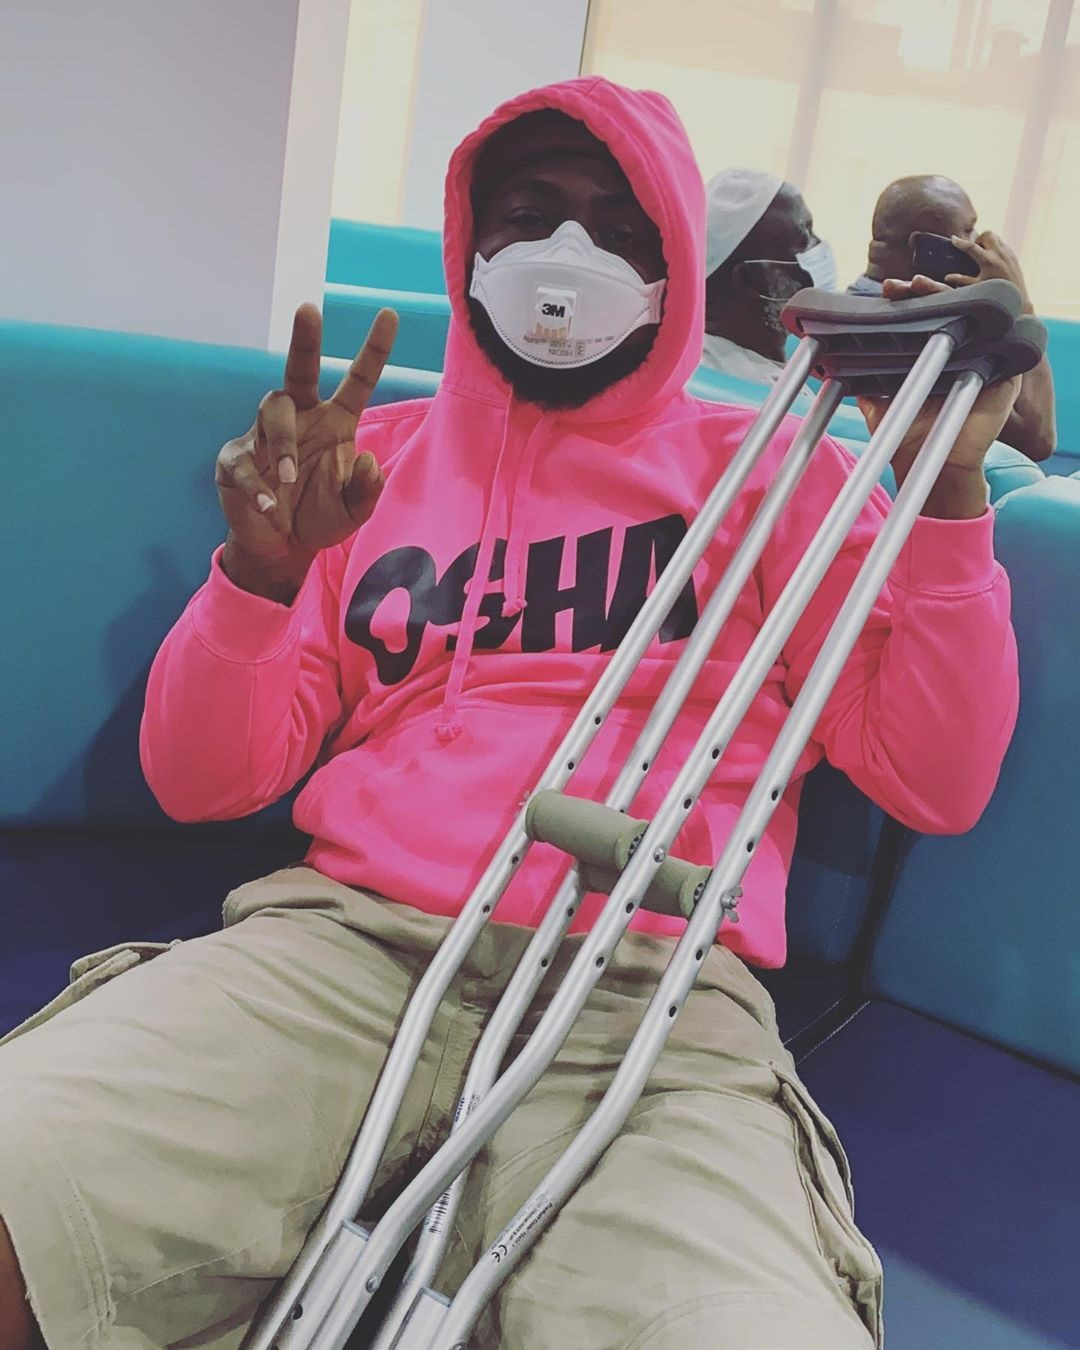 Davido confined to crutches after sustaining leg injury